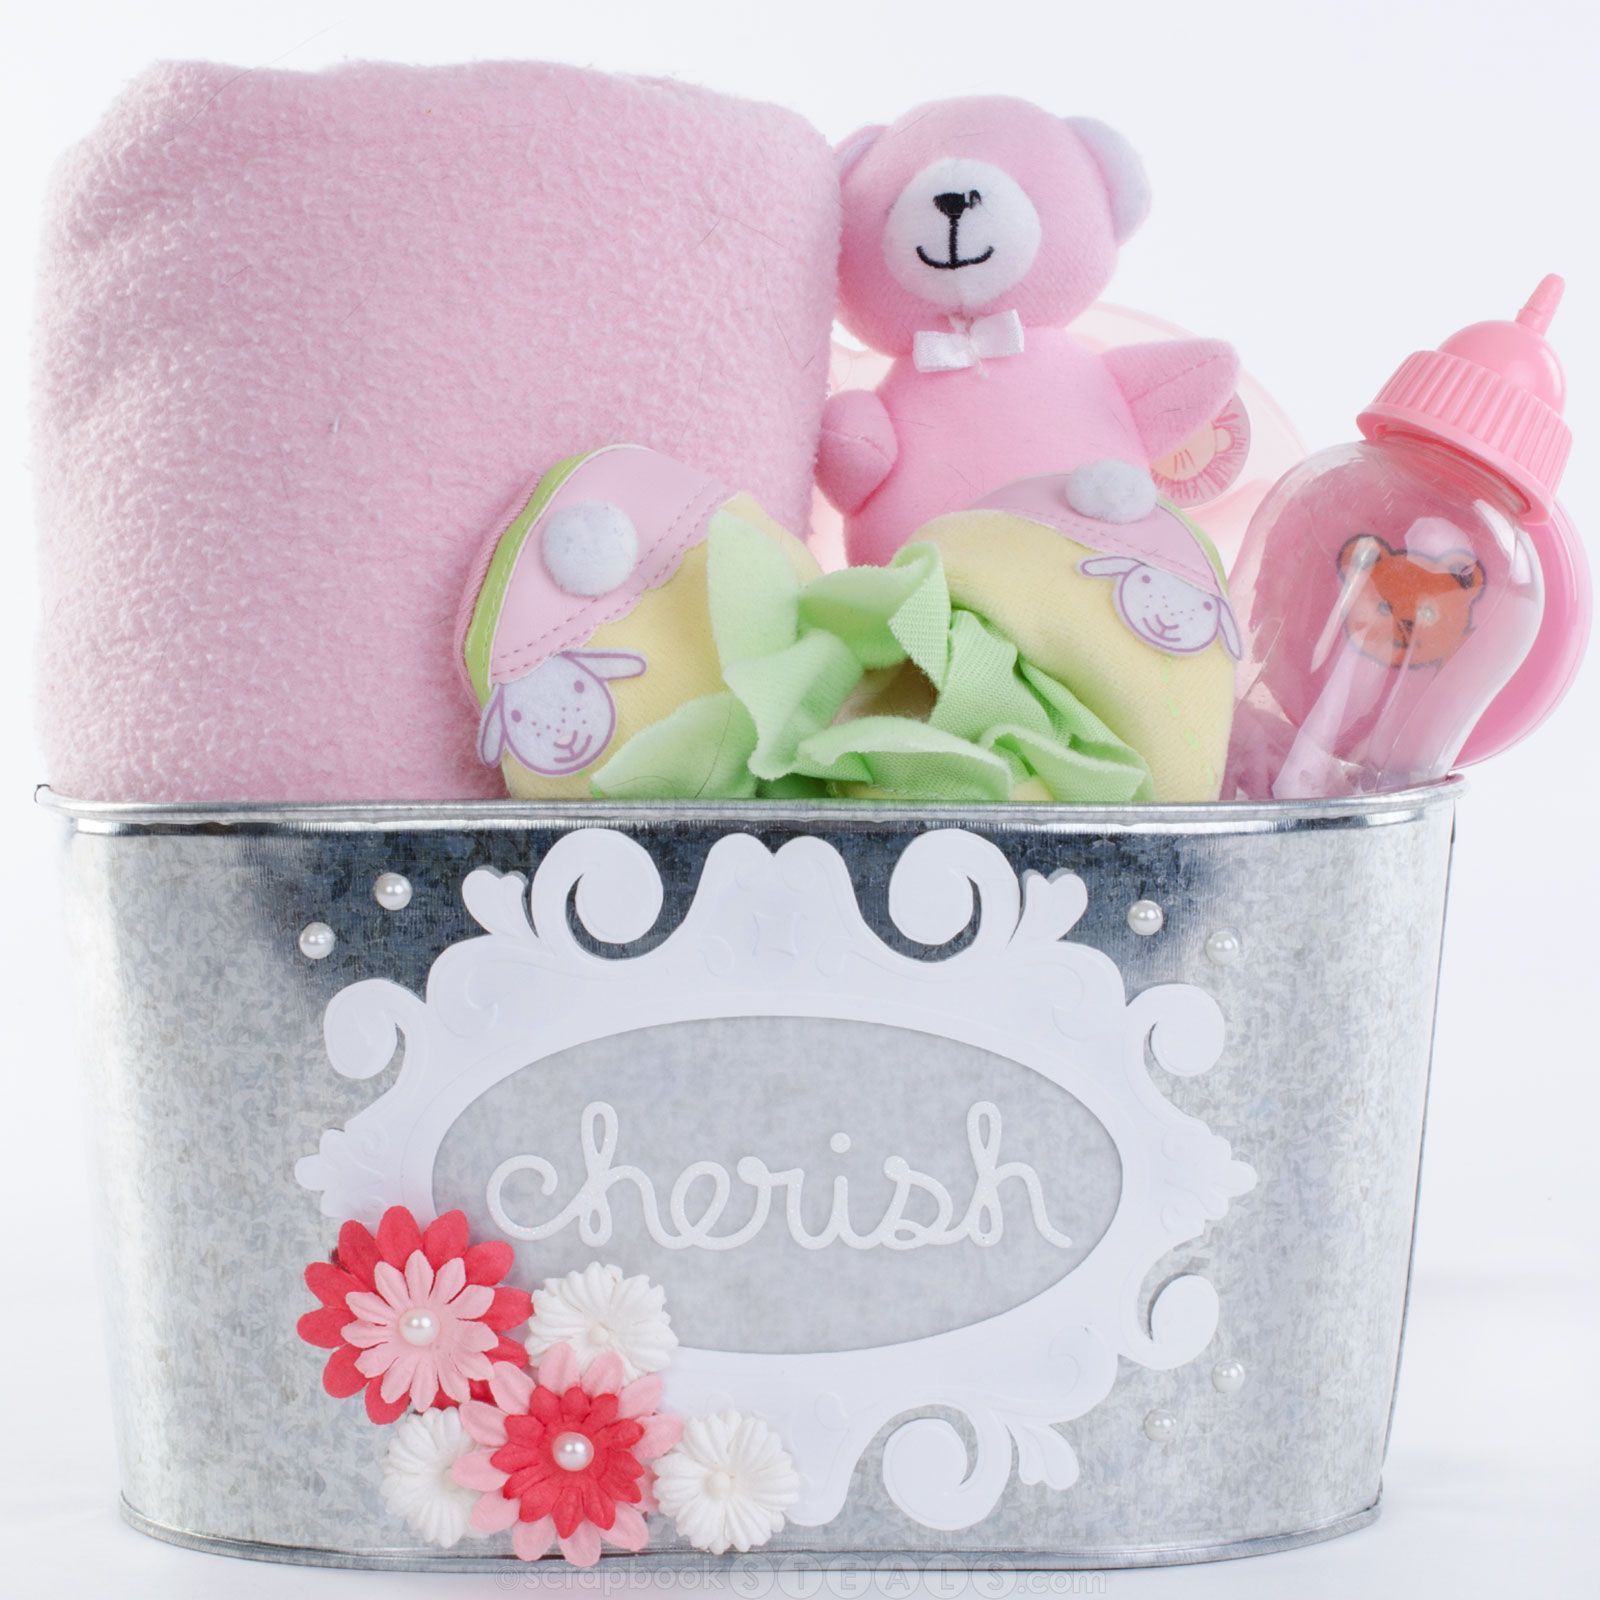 Super Easy And Super Cute DIY Baby Shower Gift!